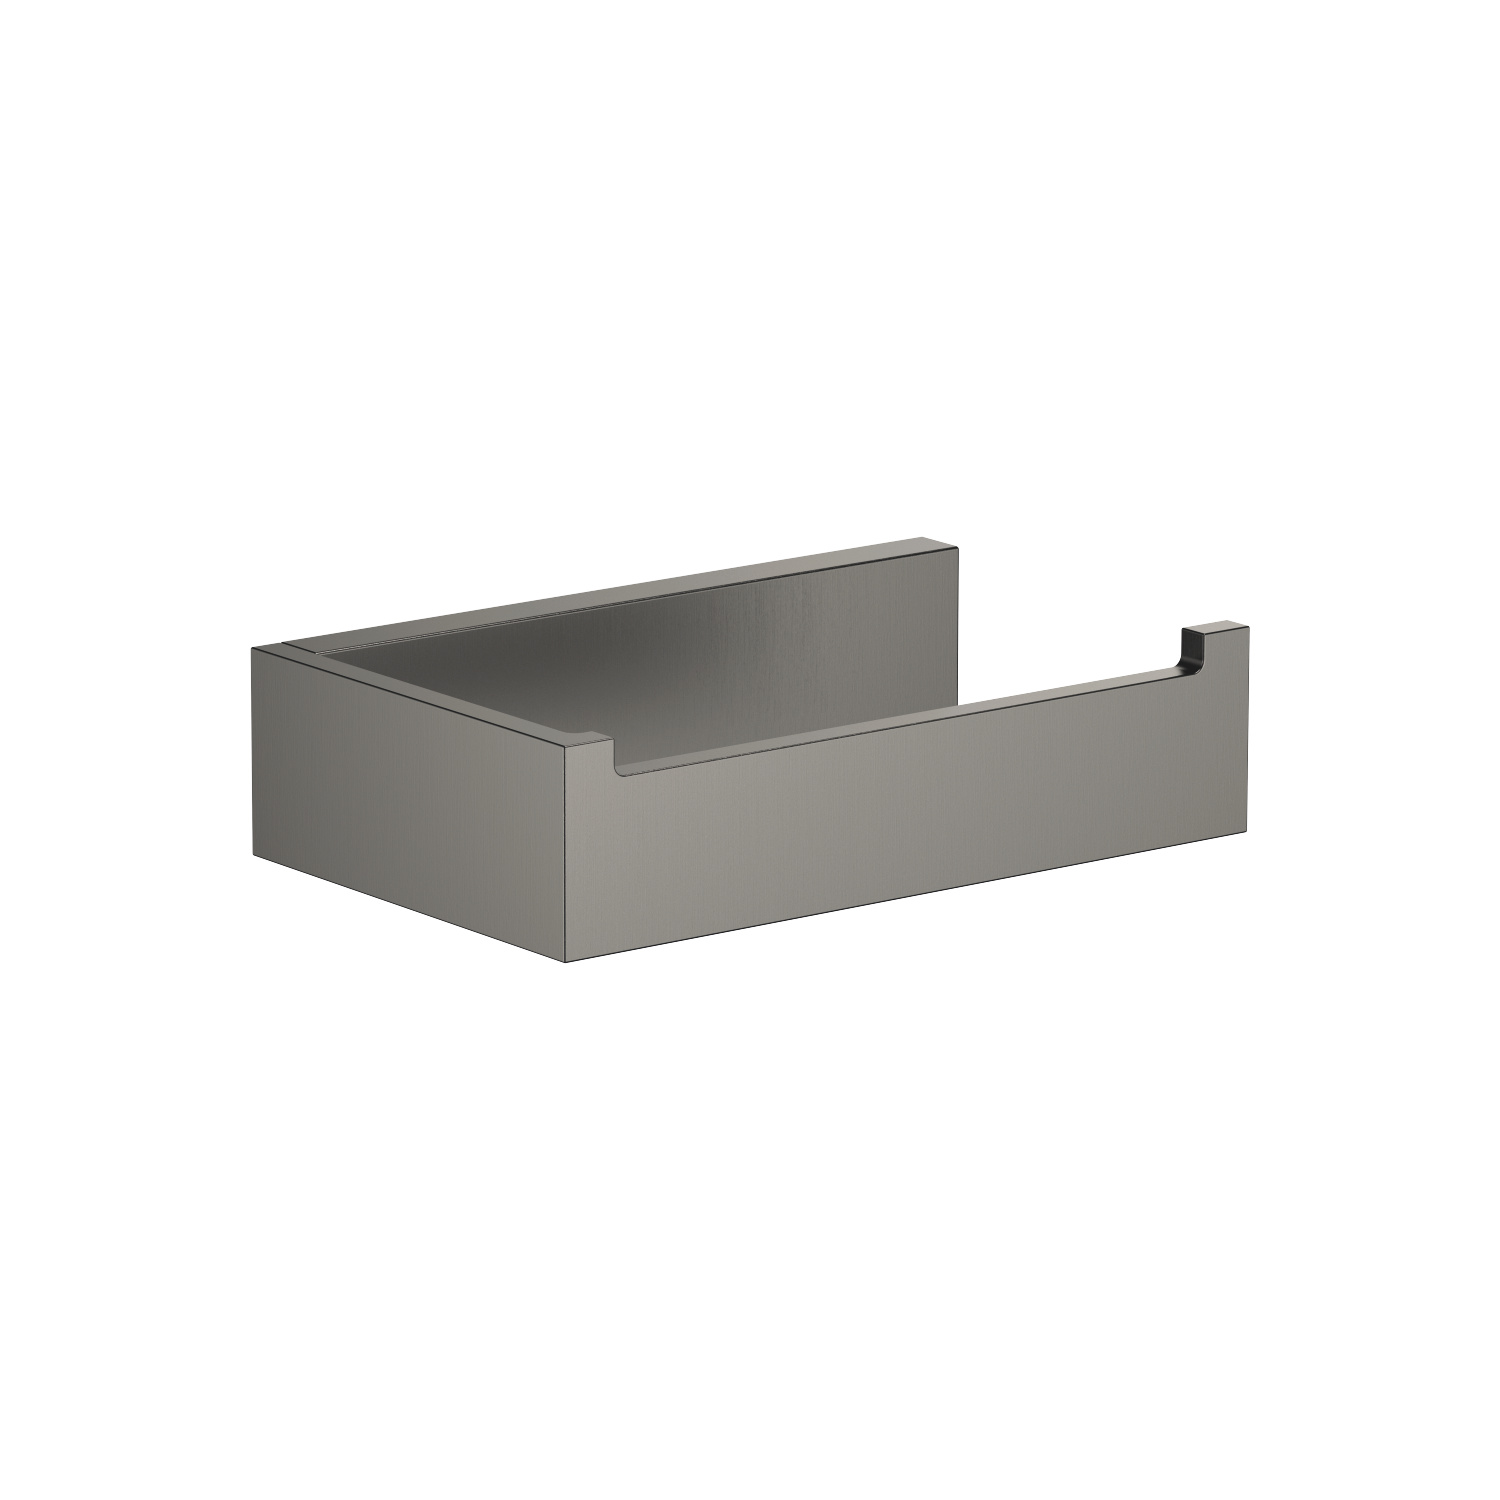 Tissue holder without cover - Dark Platinum matt